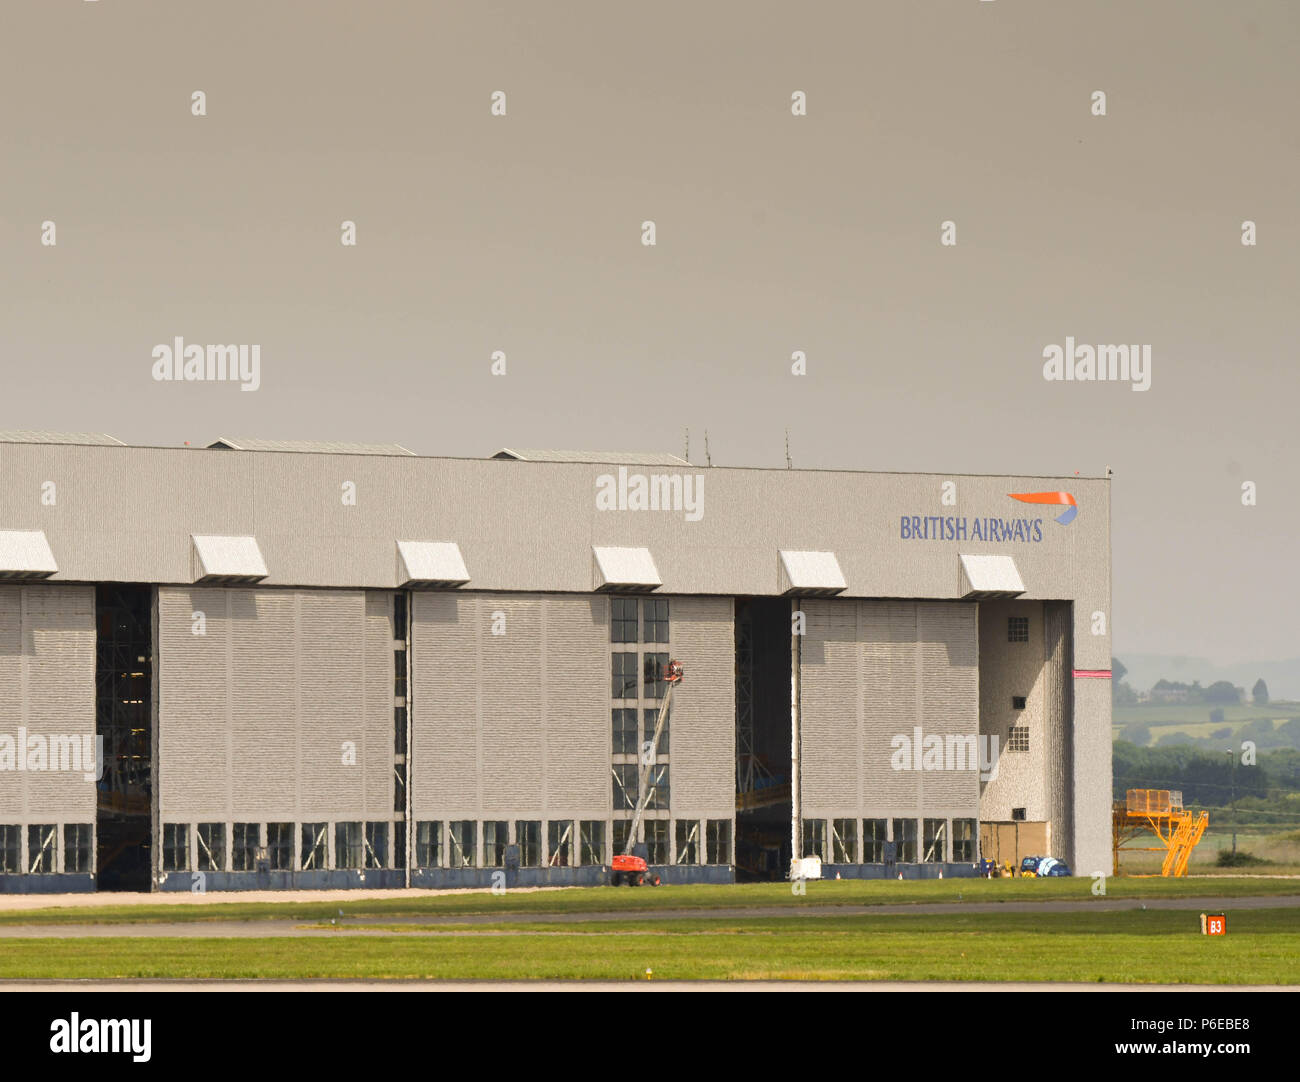 Landscape view of the British Airways maintenance facility hangar at Cardiff Wales Airport Stock Photo